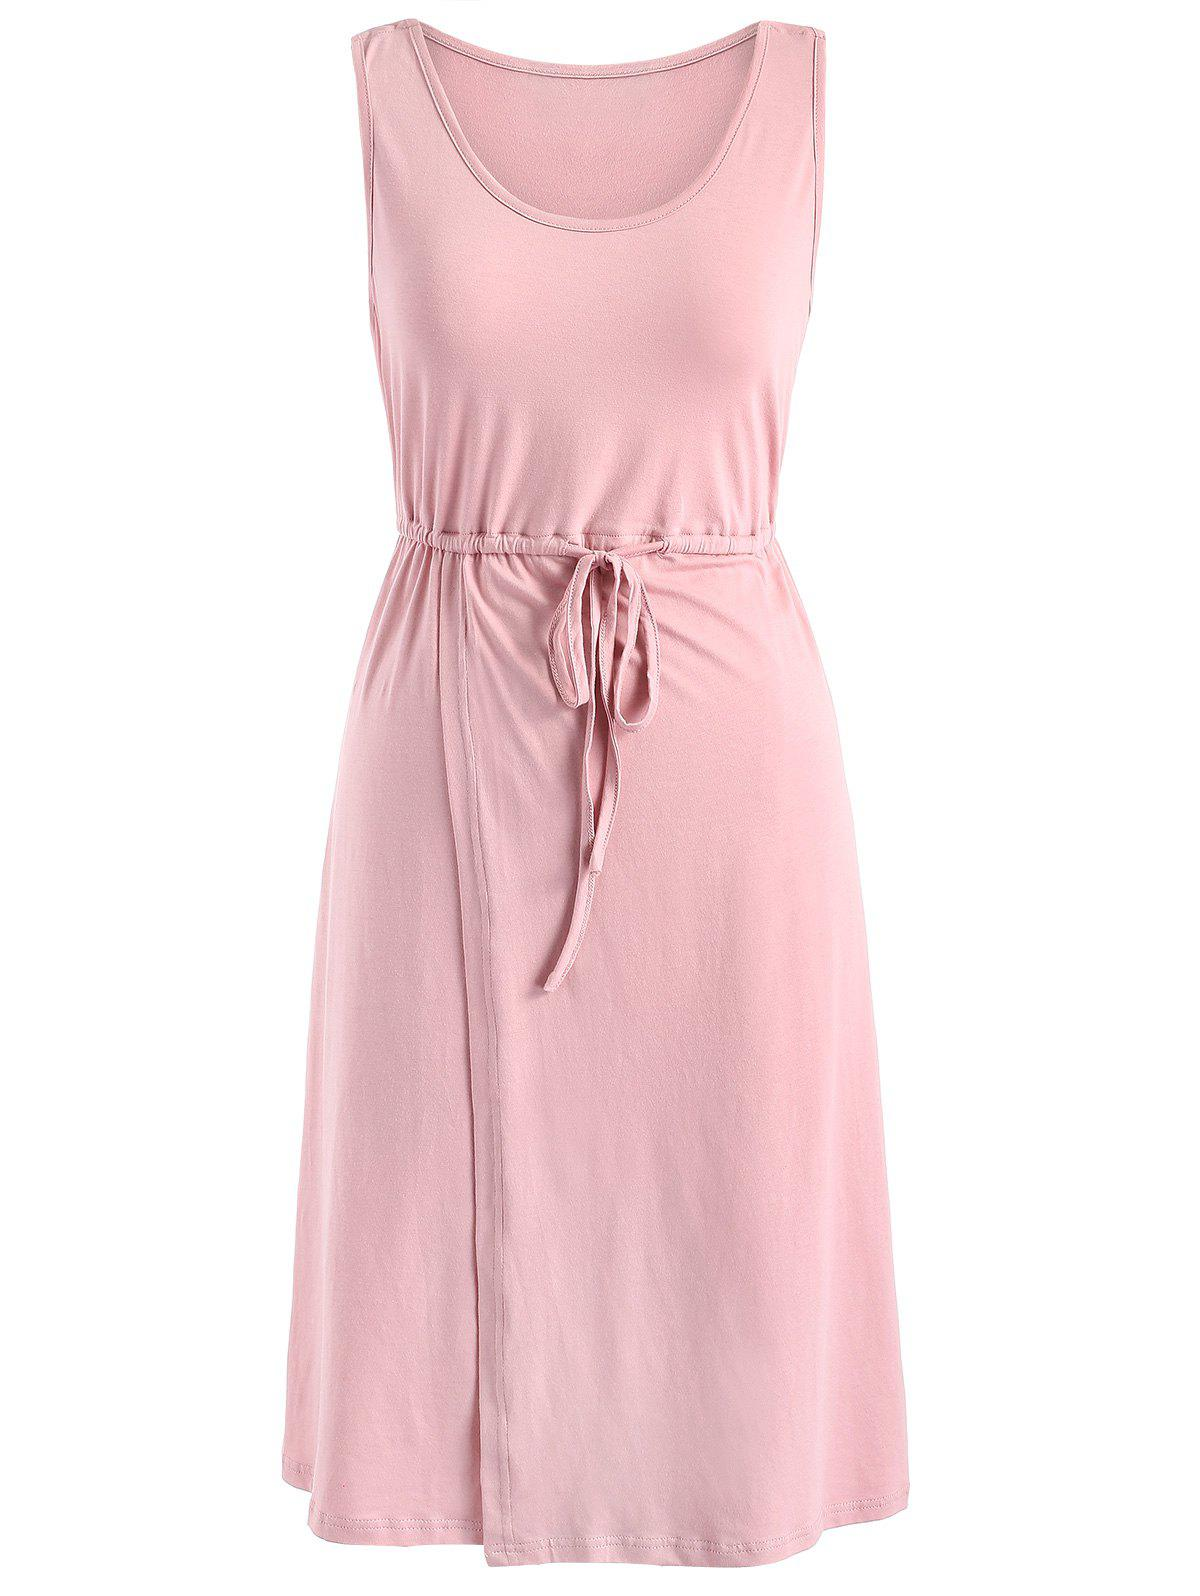 Drawstring Maternity Dress - PINK BUBBLEGUM M